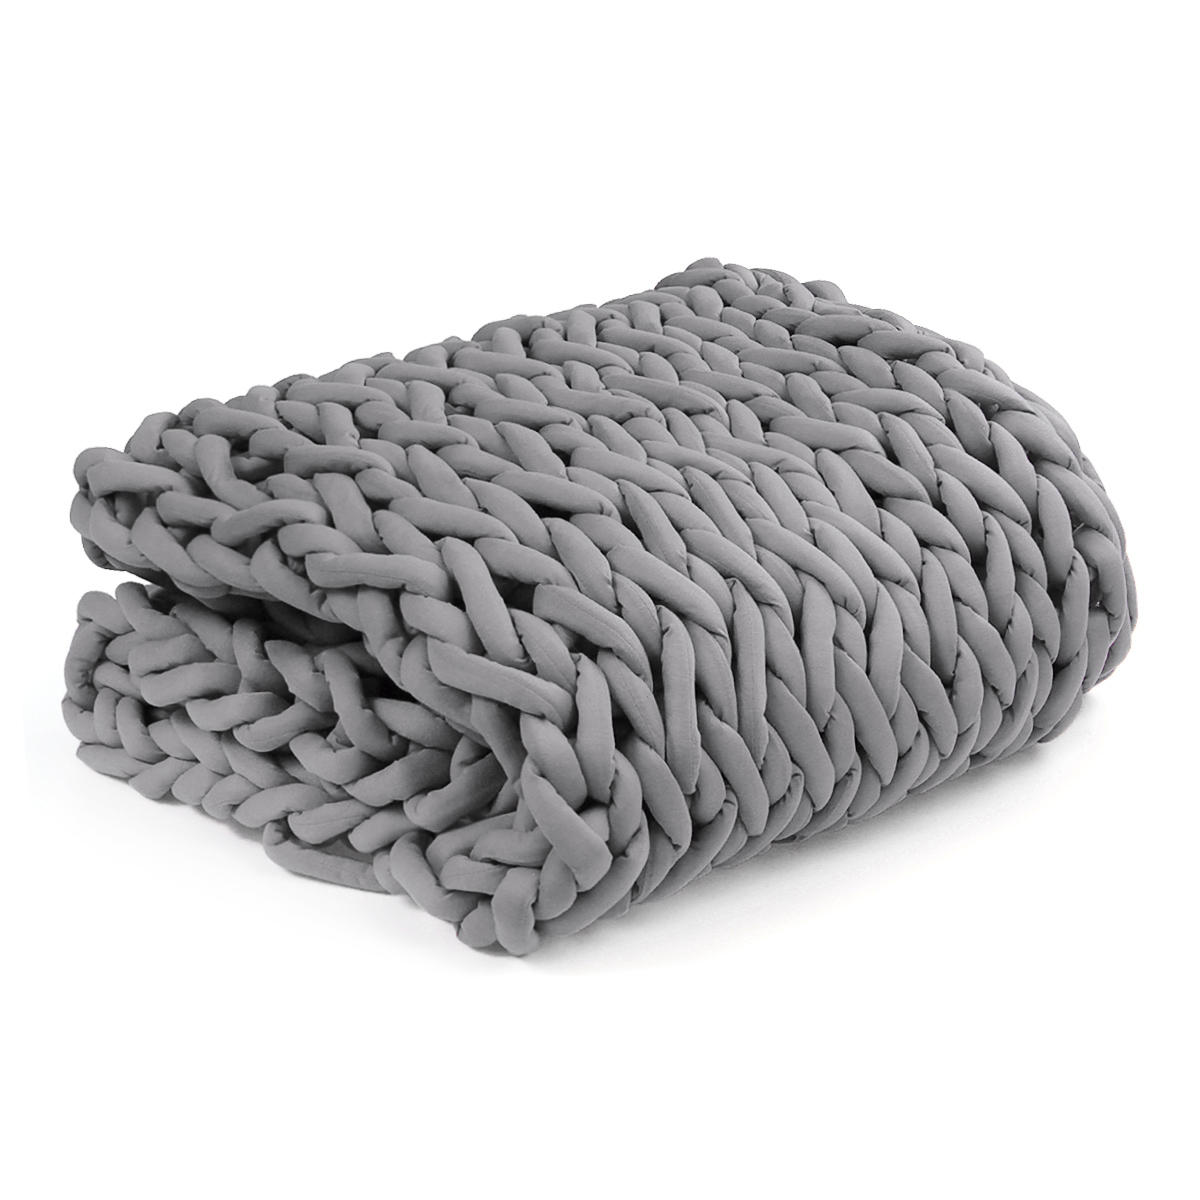 100x120cm Handmade Knitted Blankets Soft Warm Thick Line Cotton Throw Blankets - 8